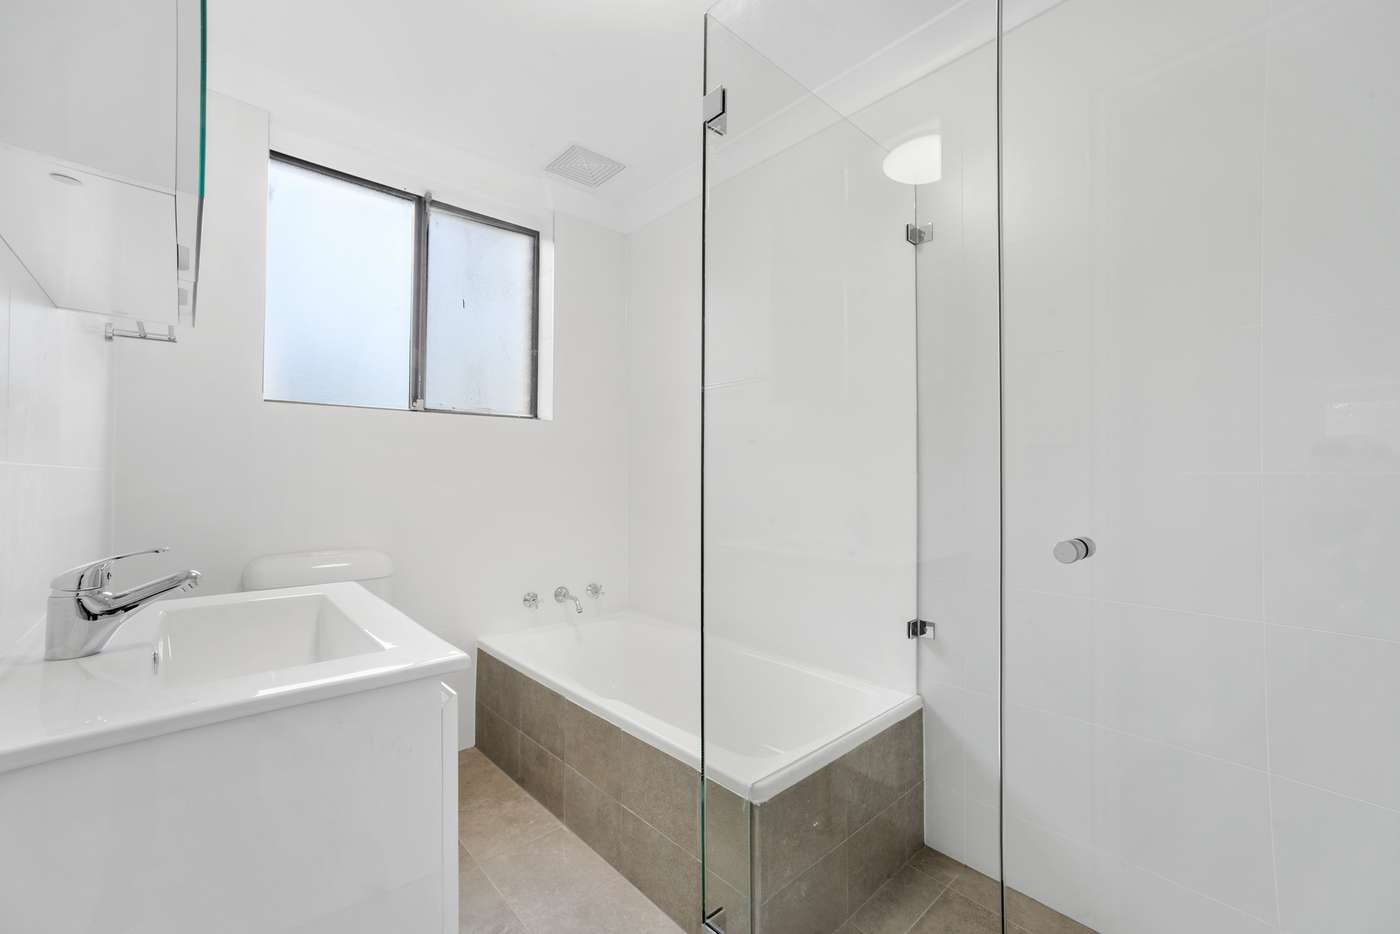 Seventh view of Homely apartment listing, 1/23 Carrington Street, North Strathfield NSW 2137